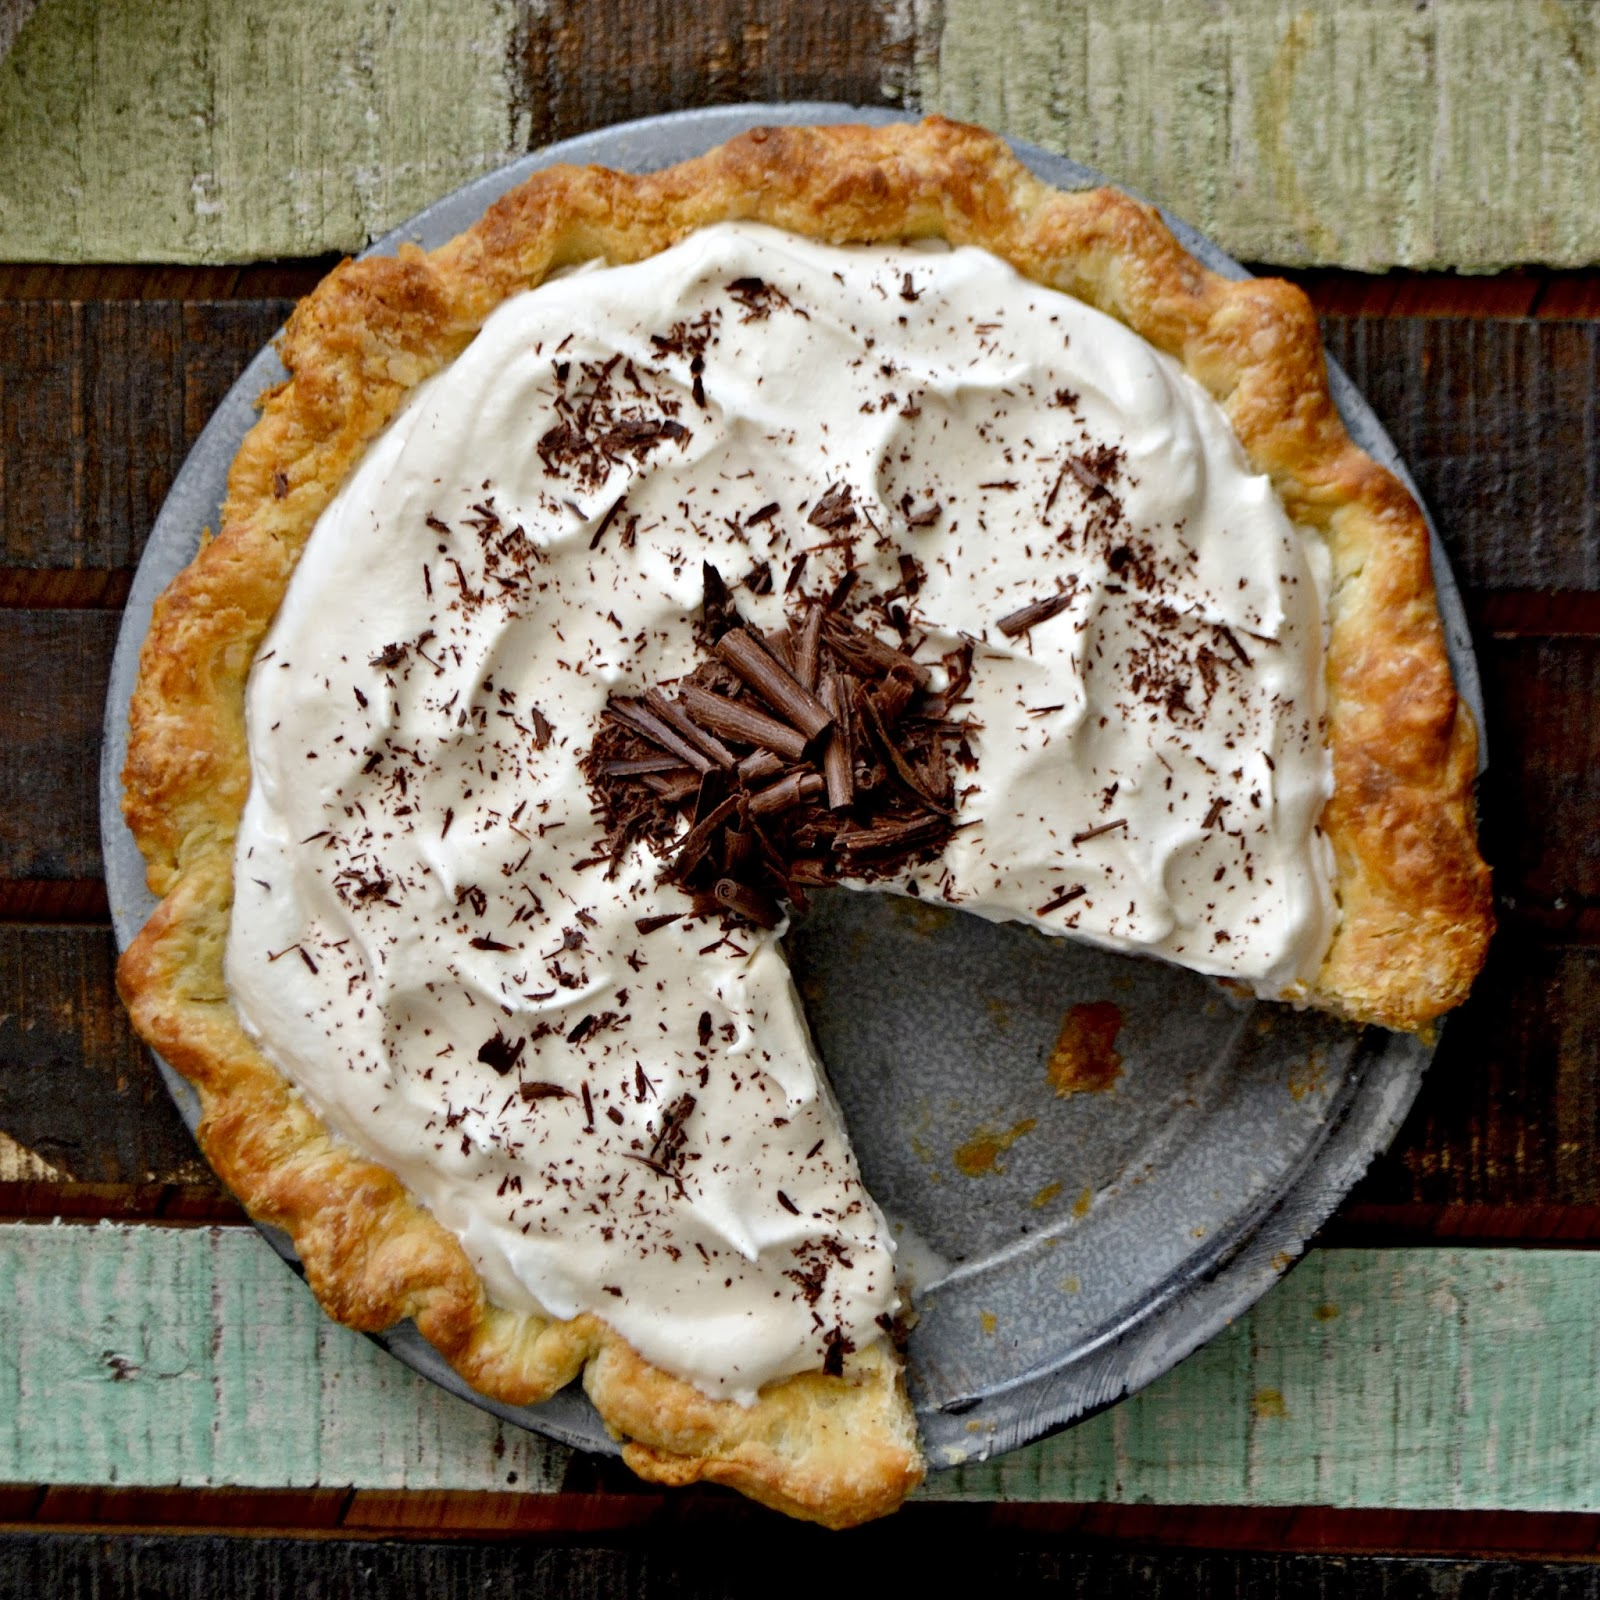 ... : Chocolate Cream Pie and a Video Tutorial on How to Make Pie Crust